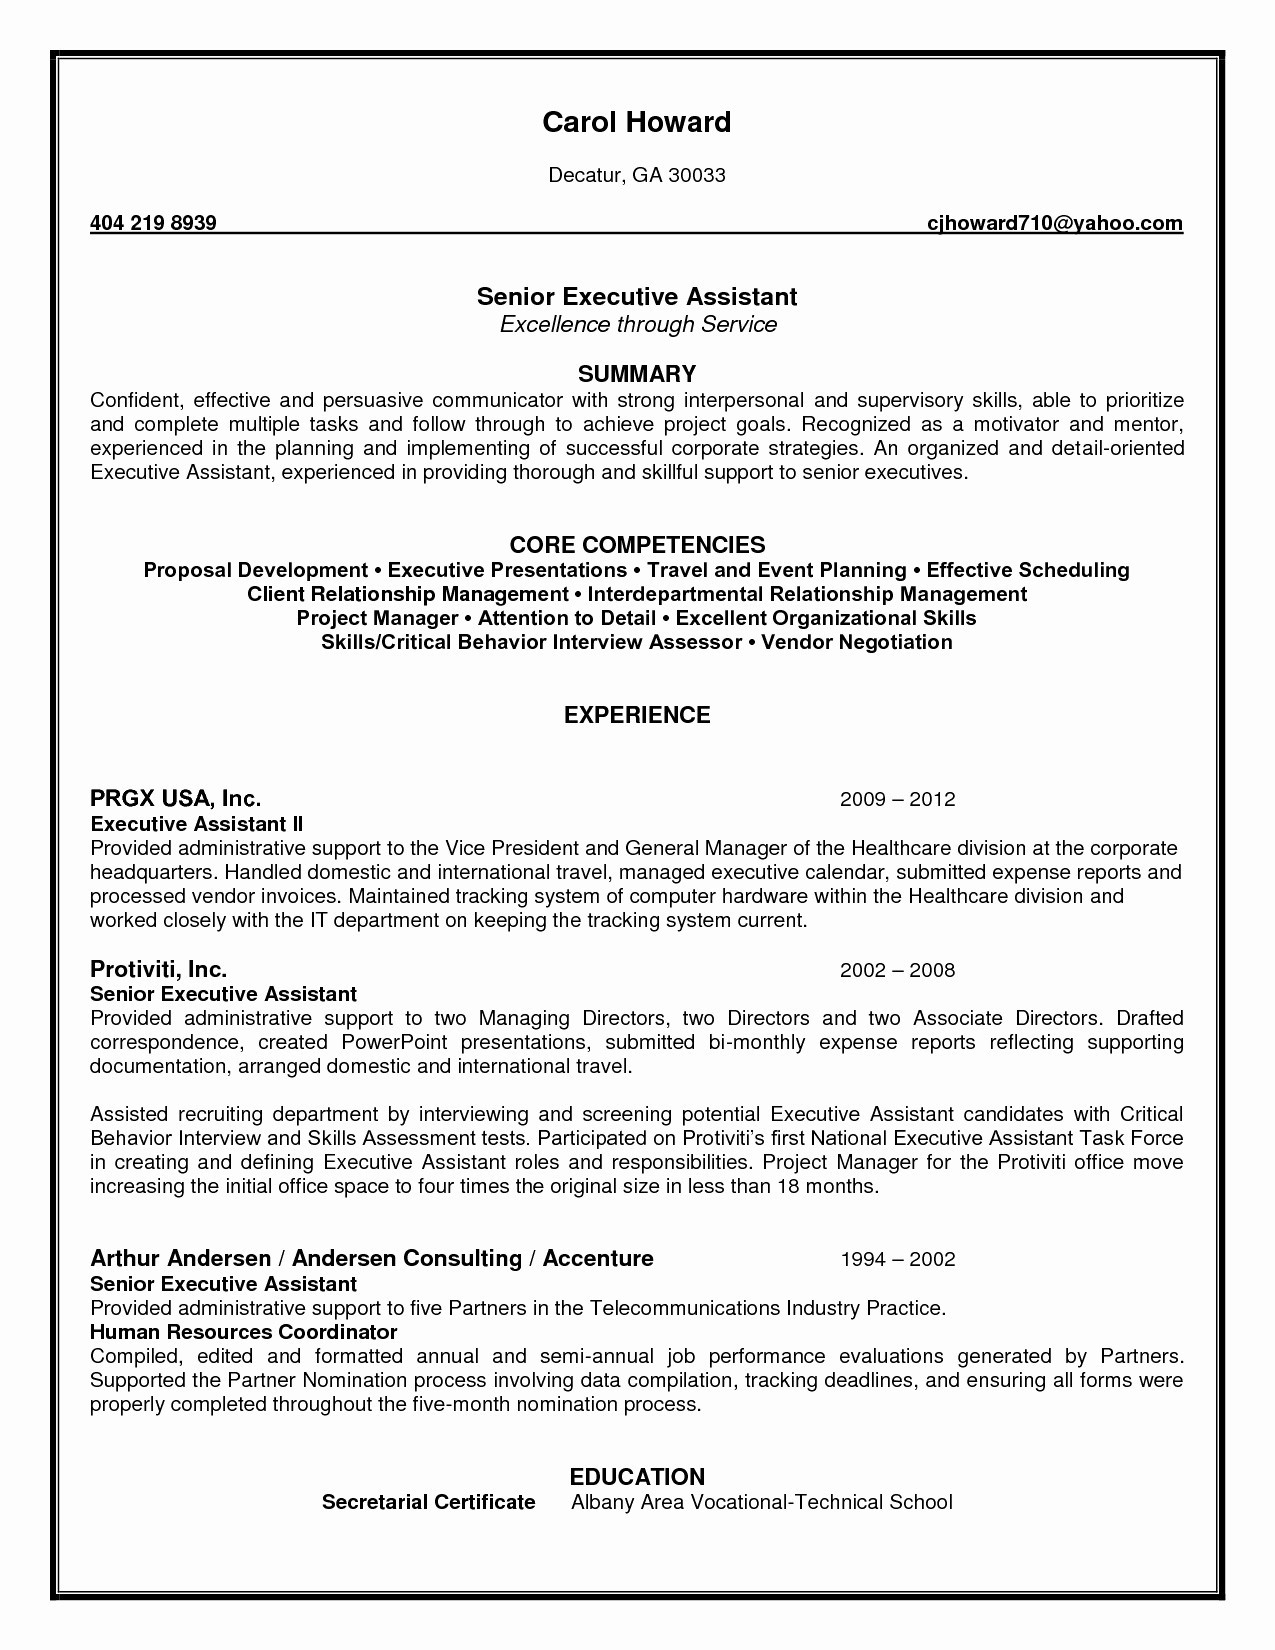 Human Resources assistant Resume - Executive assistant Resumes Unique Resume Template Executive